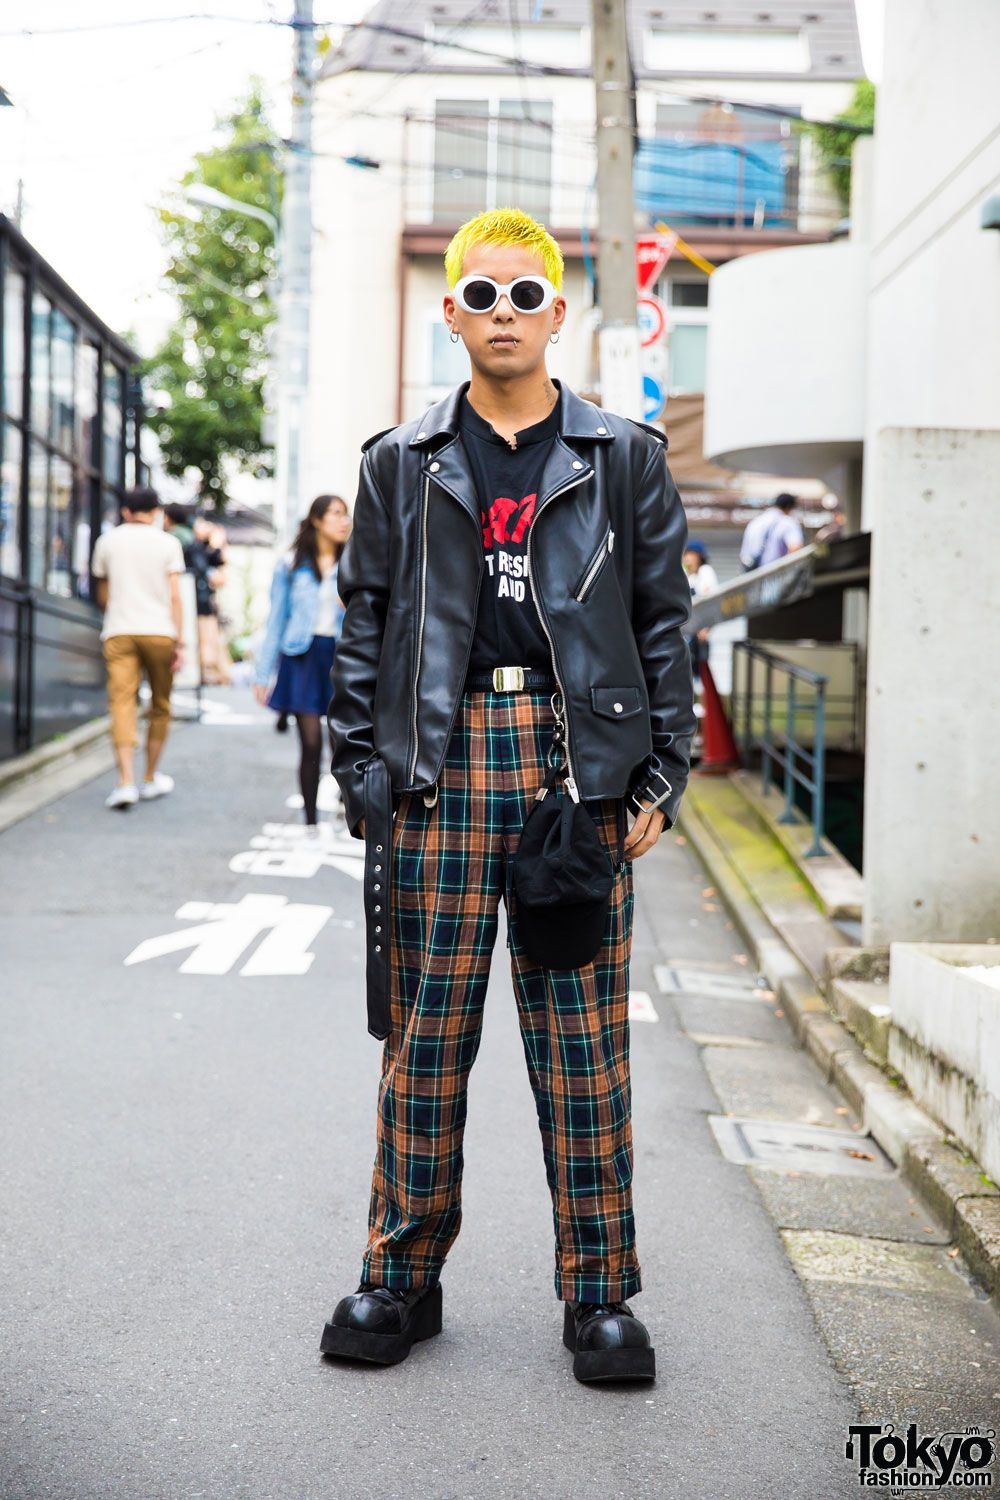 779fc5f28c50 Harajuku Guy s Punk Inspired Street Style w  Yellow Hair